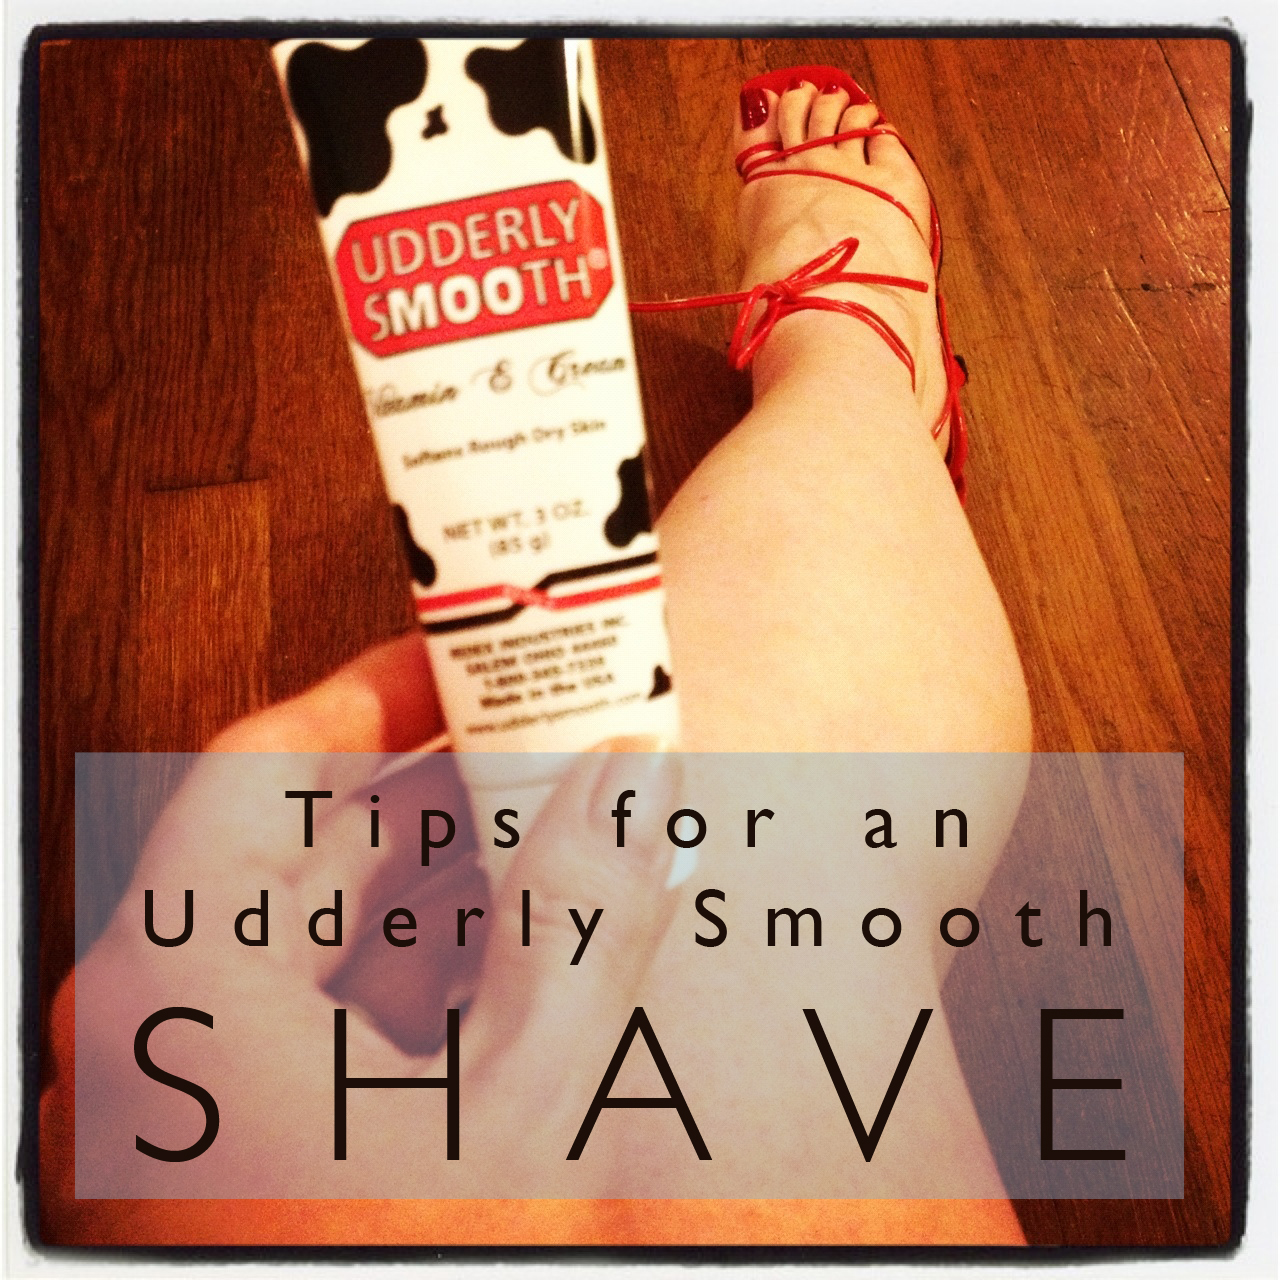 Tips for an Udderly Smooth Shave